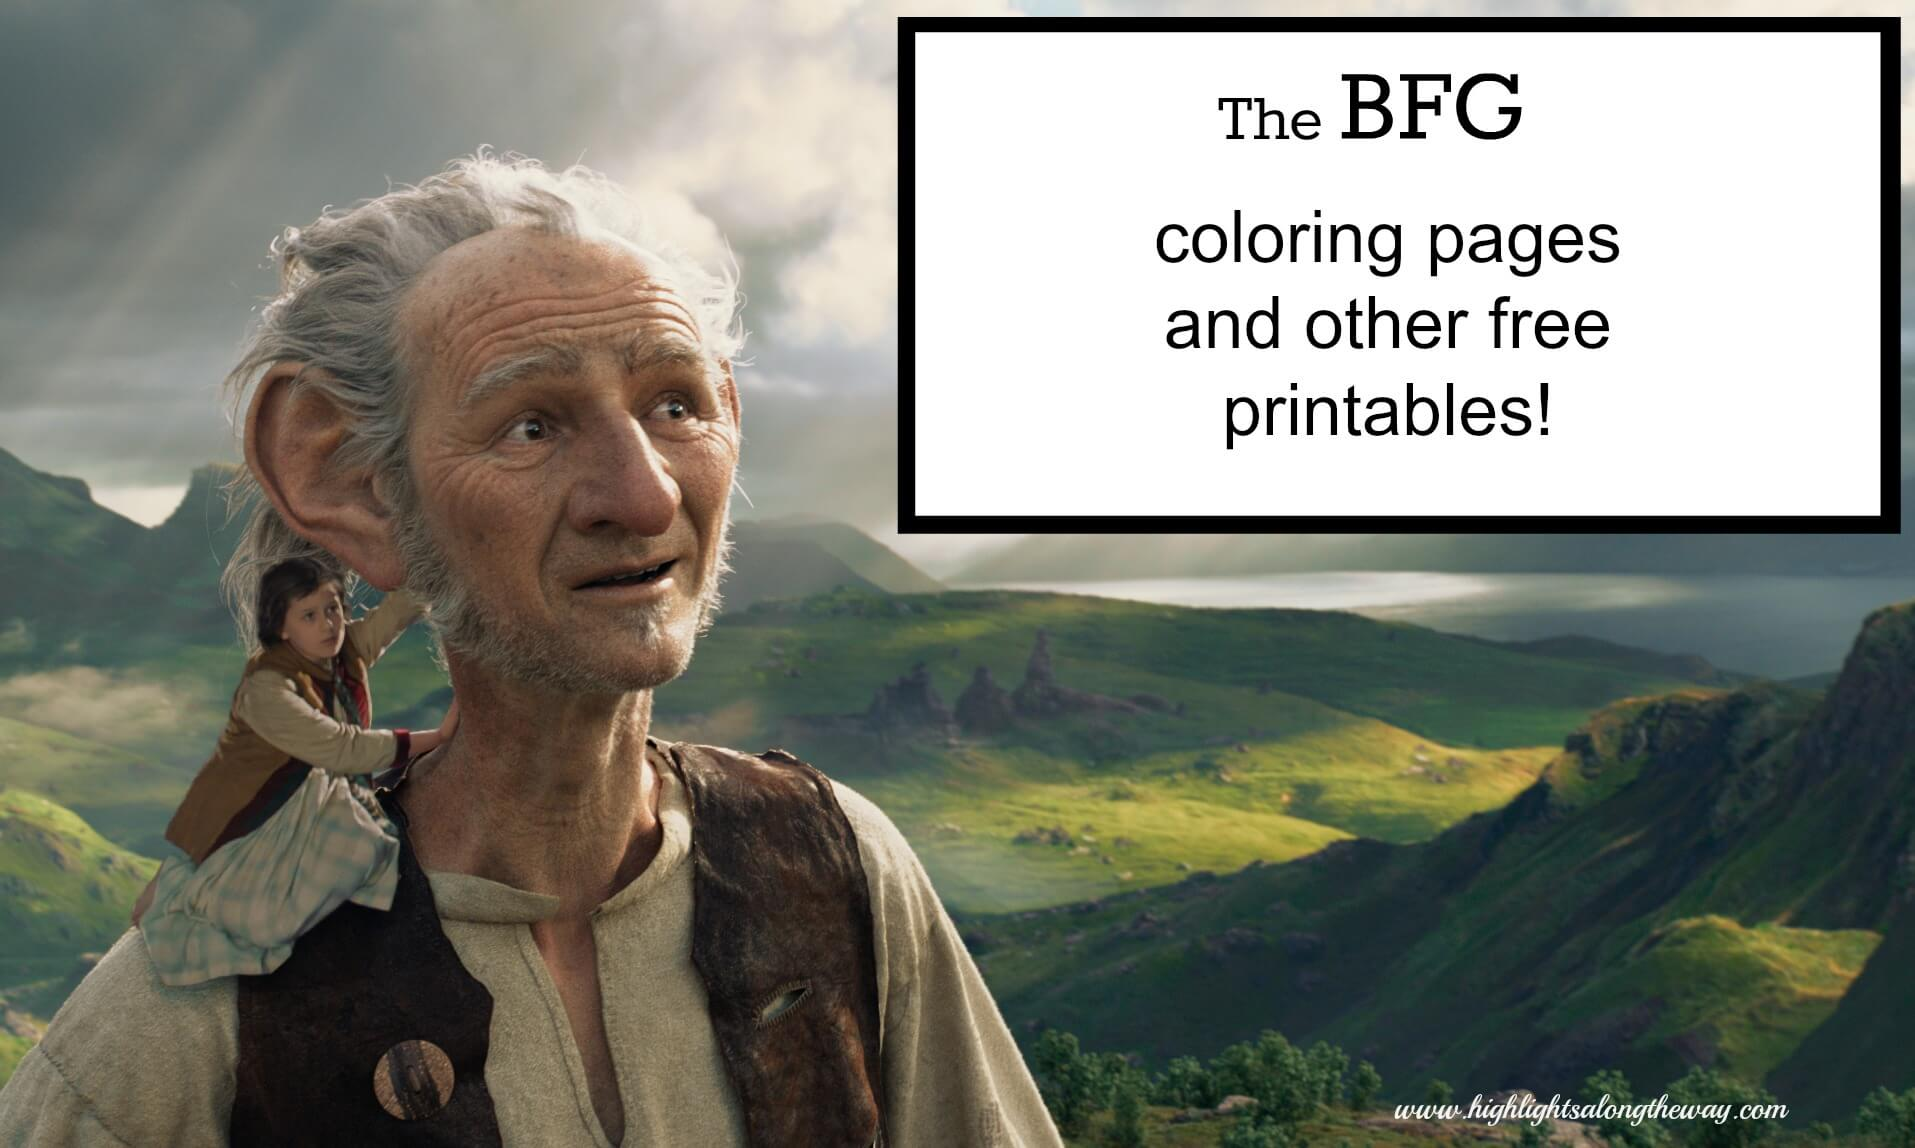 The BFG coloring pages – free printables!